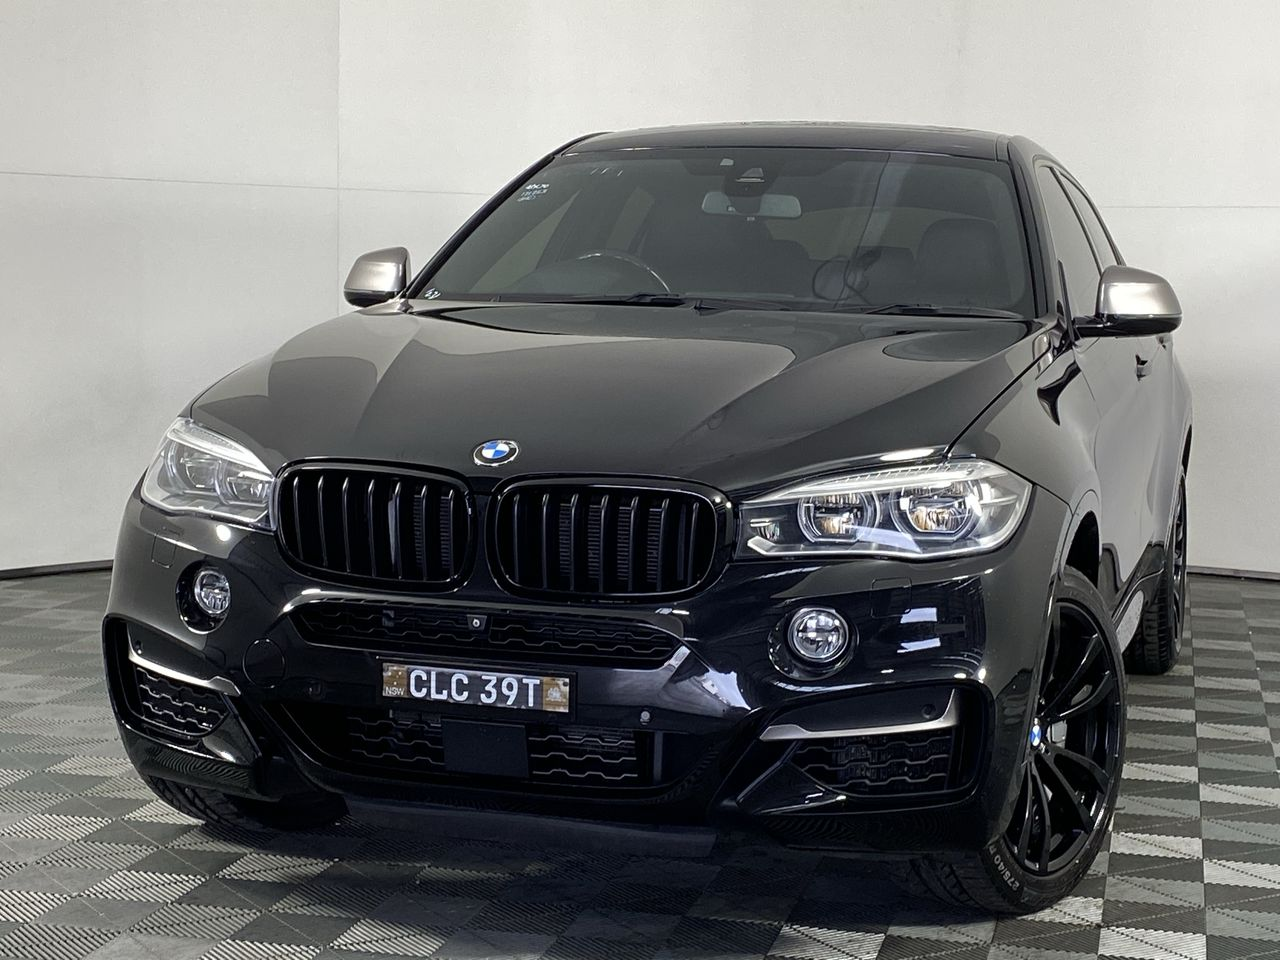 2015 BMW X6 M50d F16 Turbo Diesel Automatic - 8 Speed Coupe